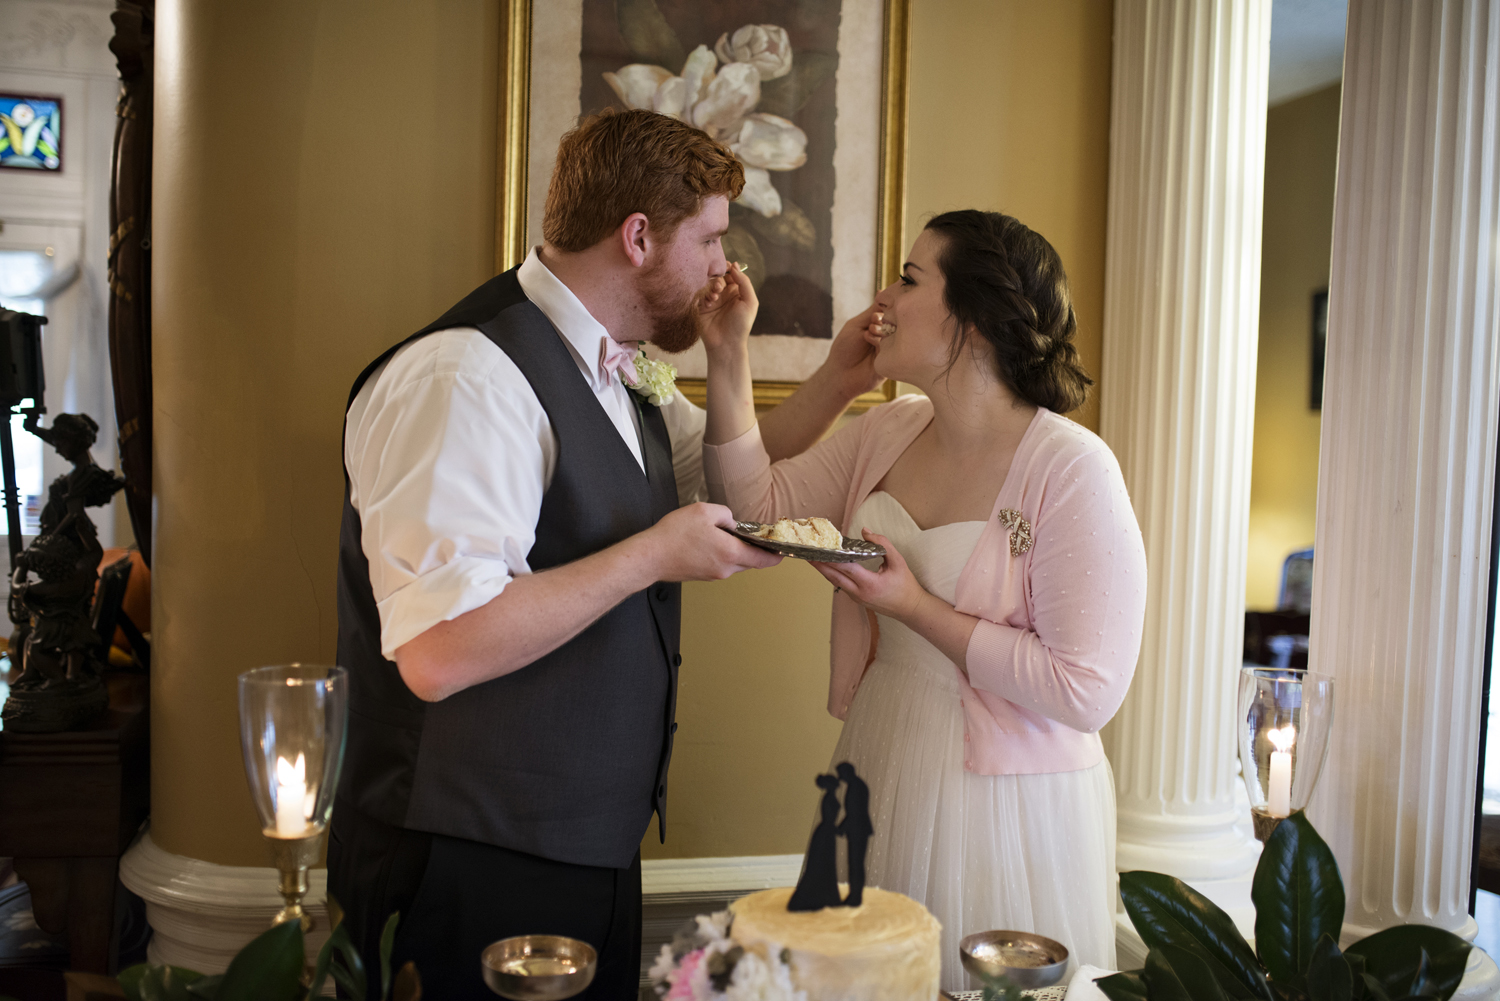 Bride and groom feed each other cake after they elope